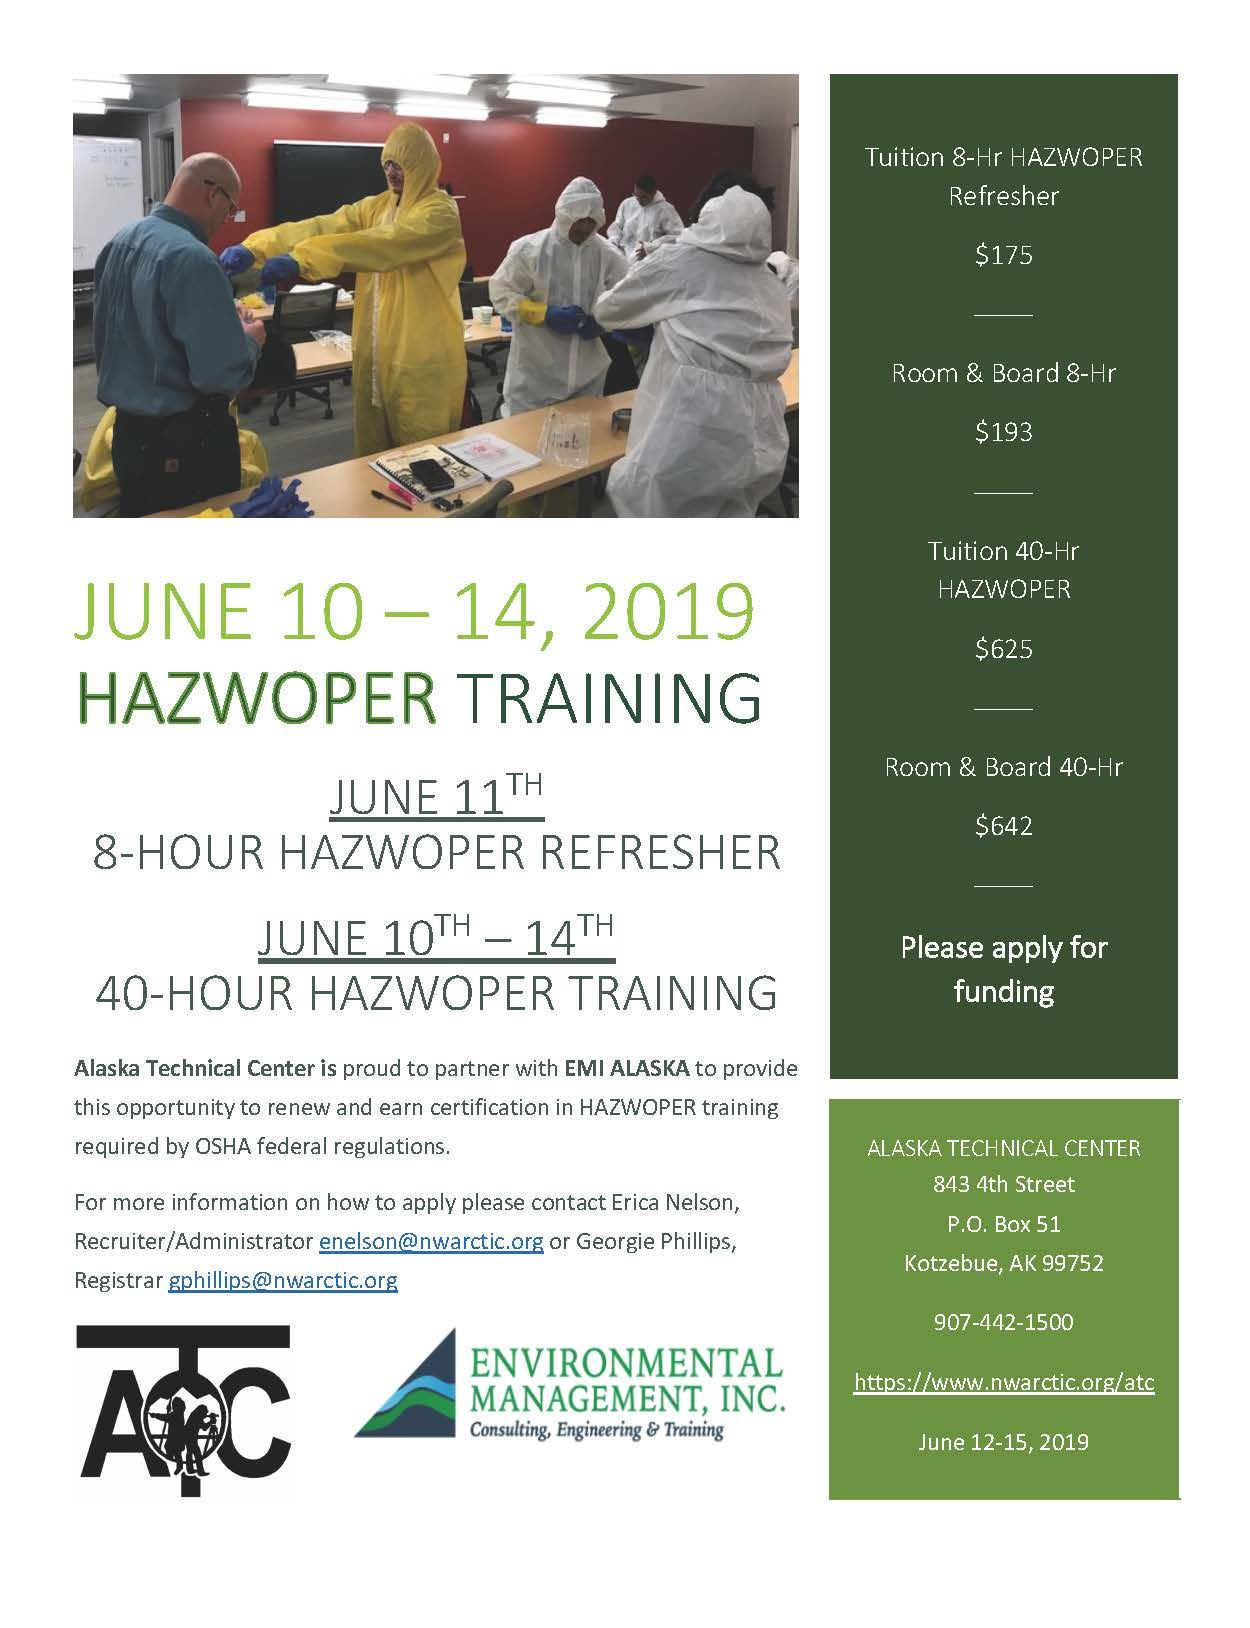 CLICK HERE FOR AN APPLICAITON HAZWOPER TRAINING JUNE 10- 14, 2019